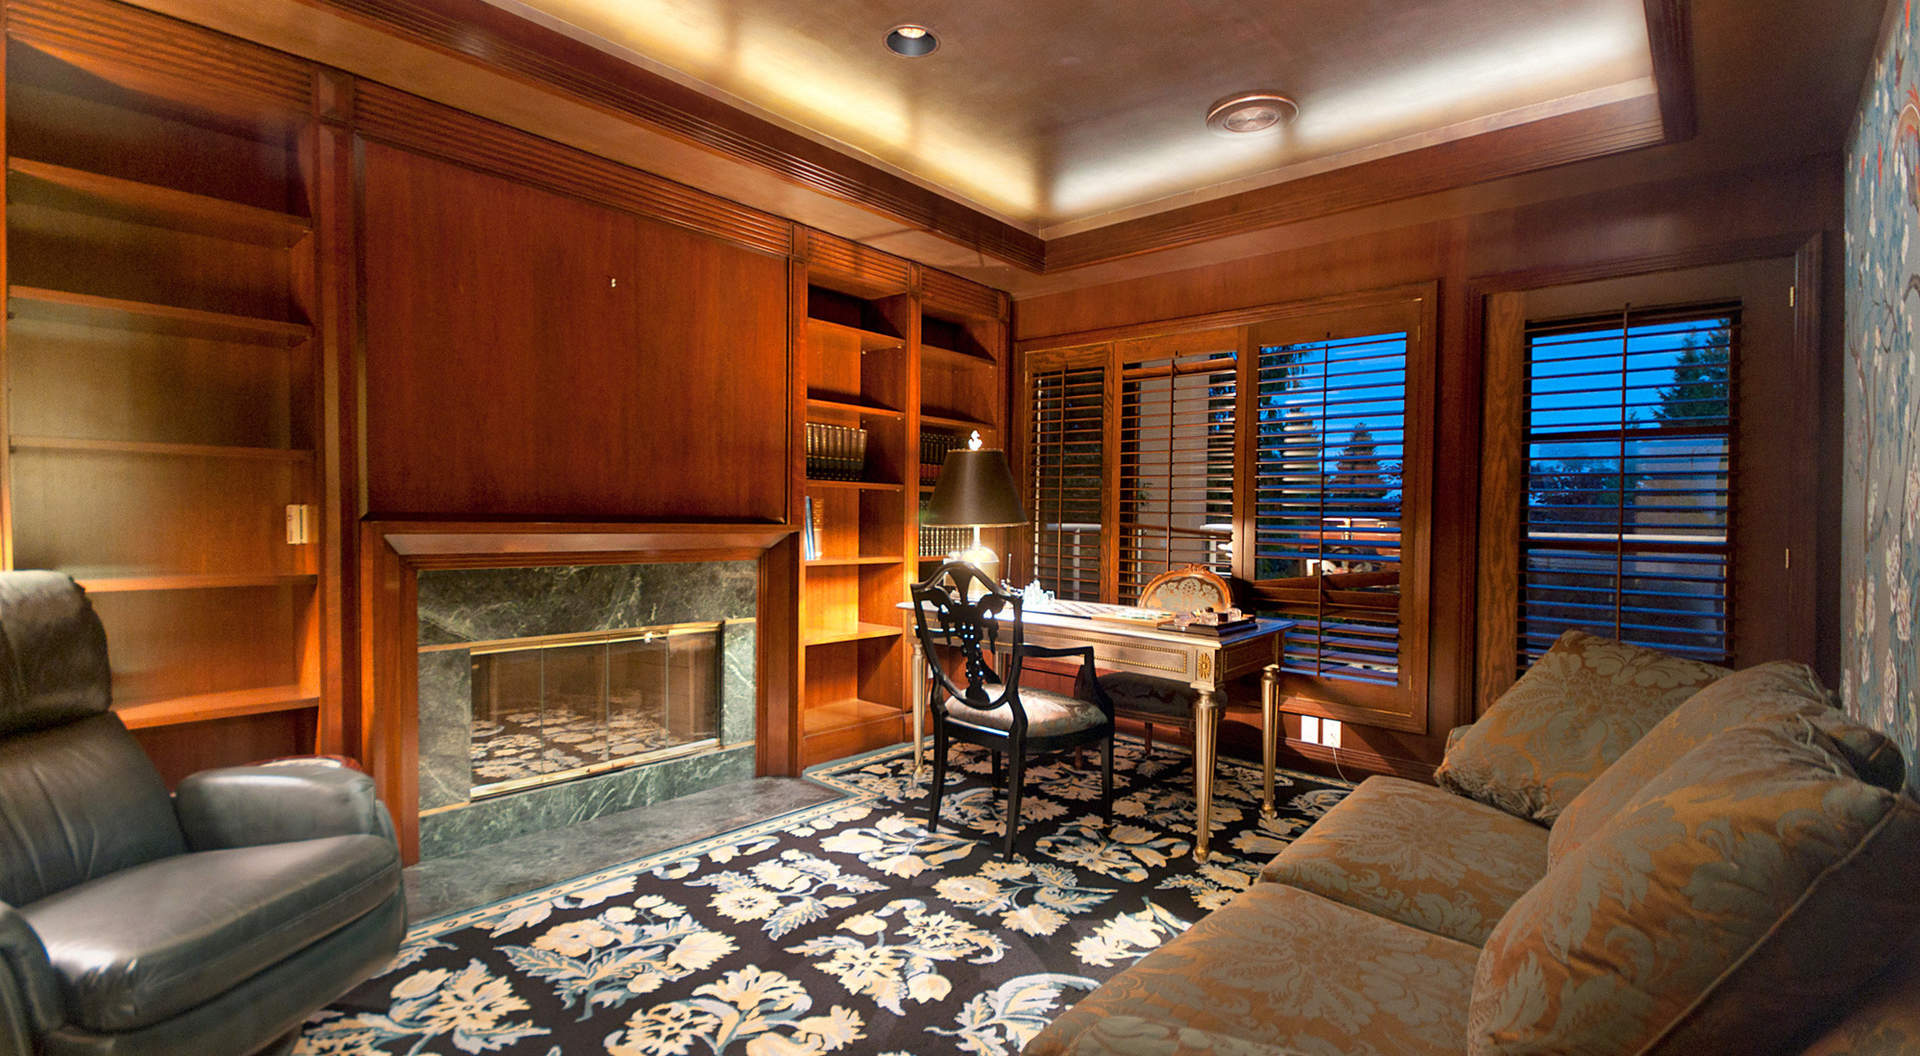 Private Den with Wood Panelled Walls